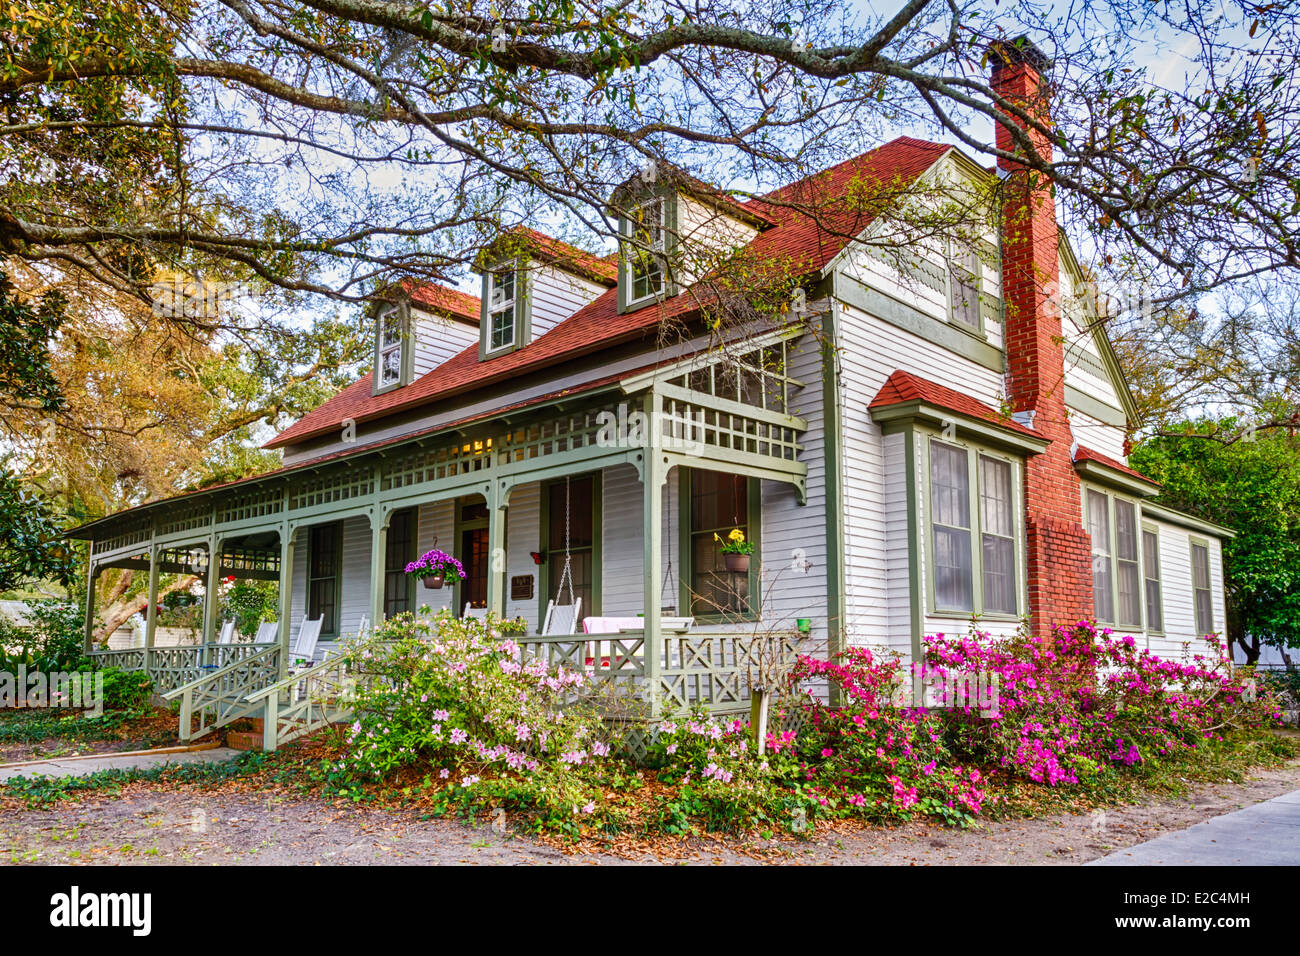 Awe Inspiring House In Bloom In Fernandina Beach Historic District Download Free Architecture Designs Embacsunscenecom